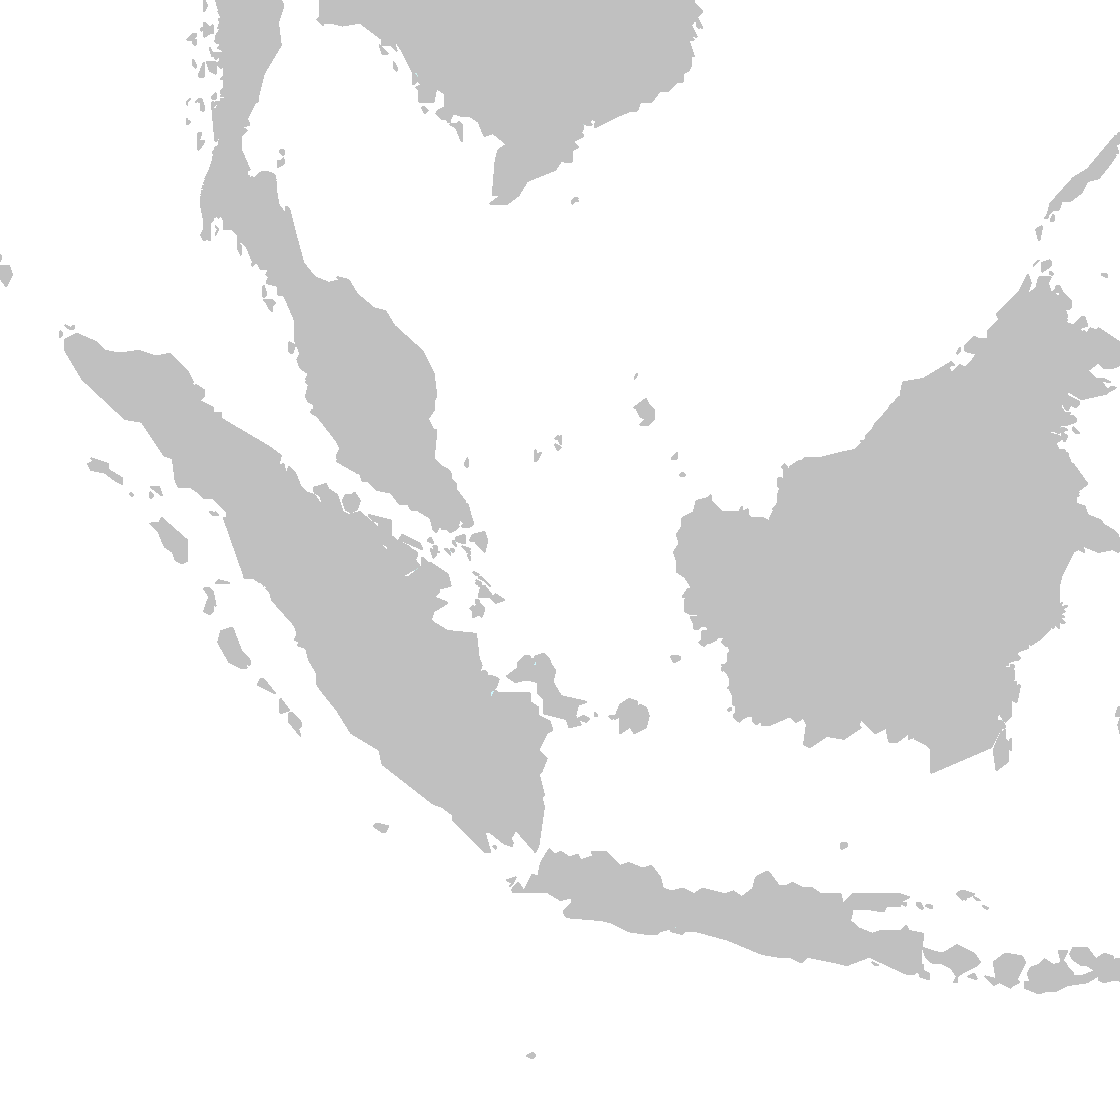 File:Map sumatra natuna.png